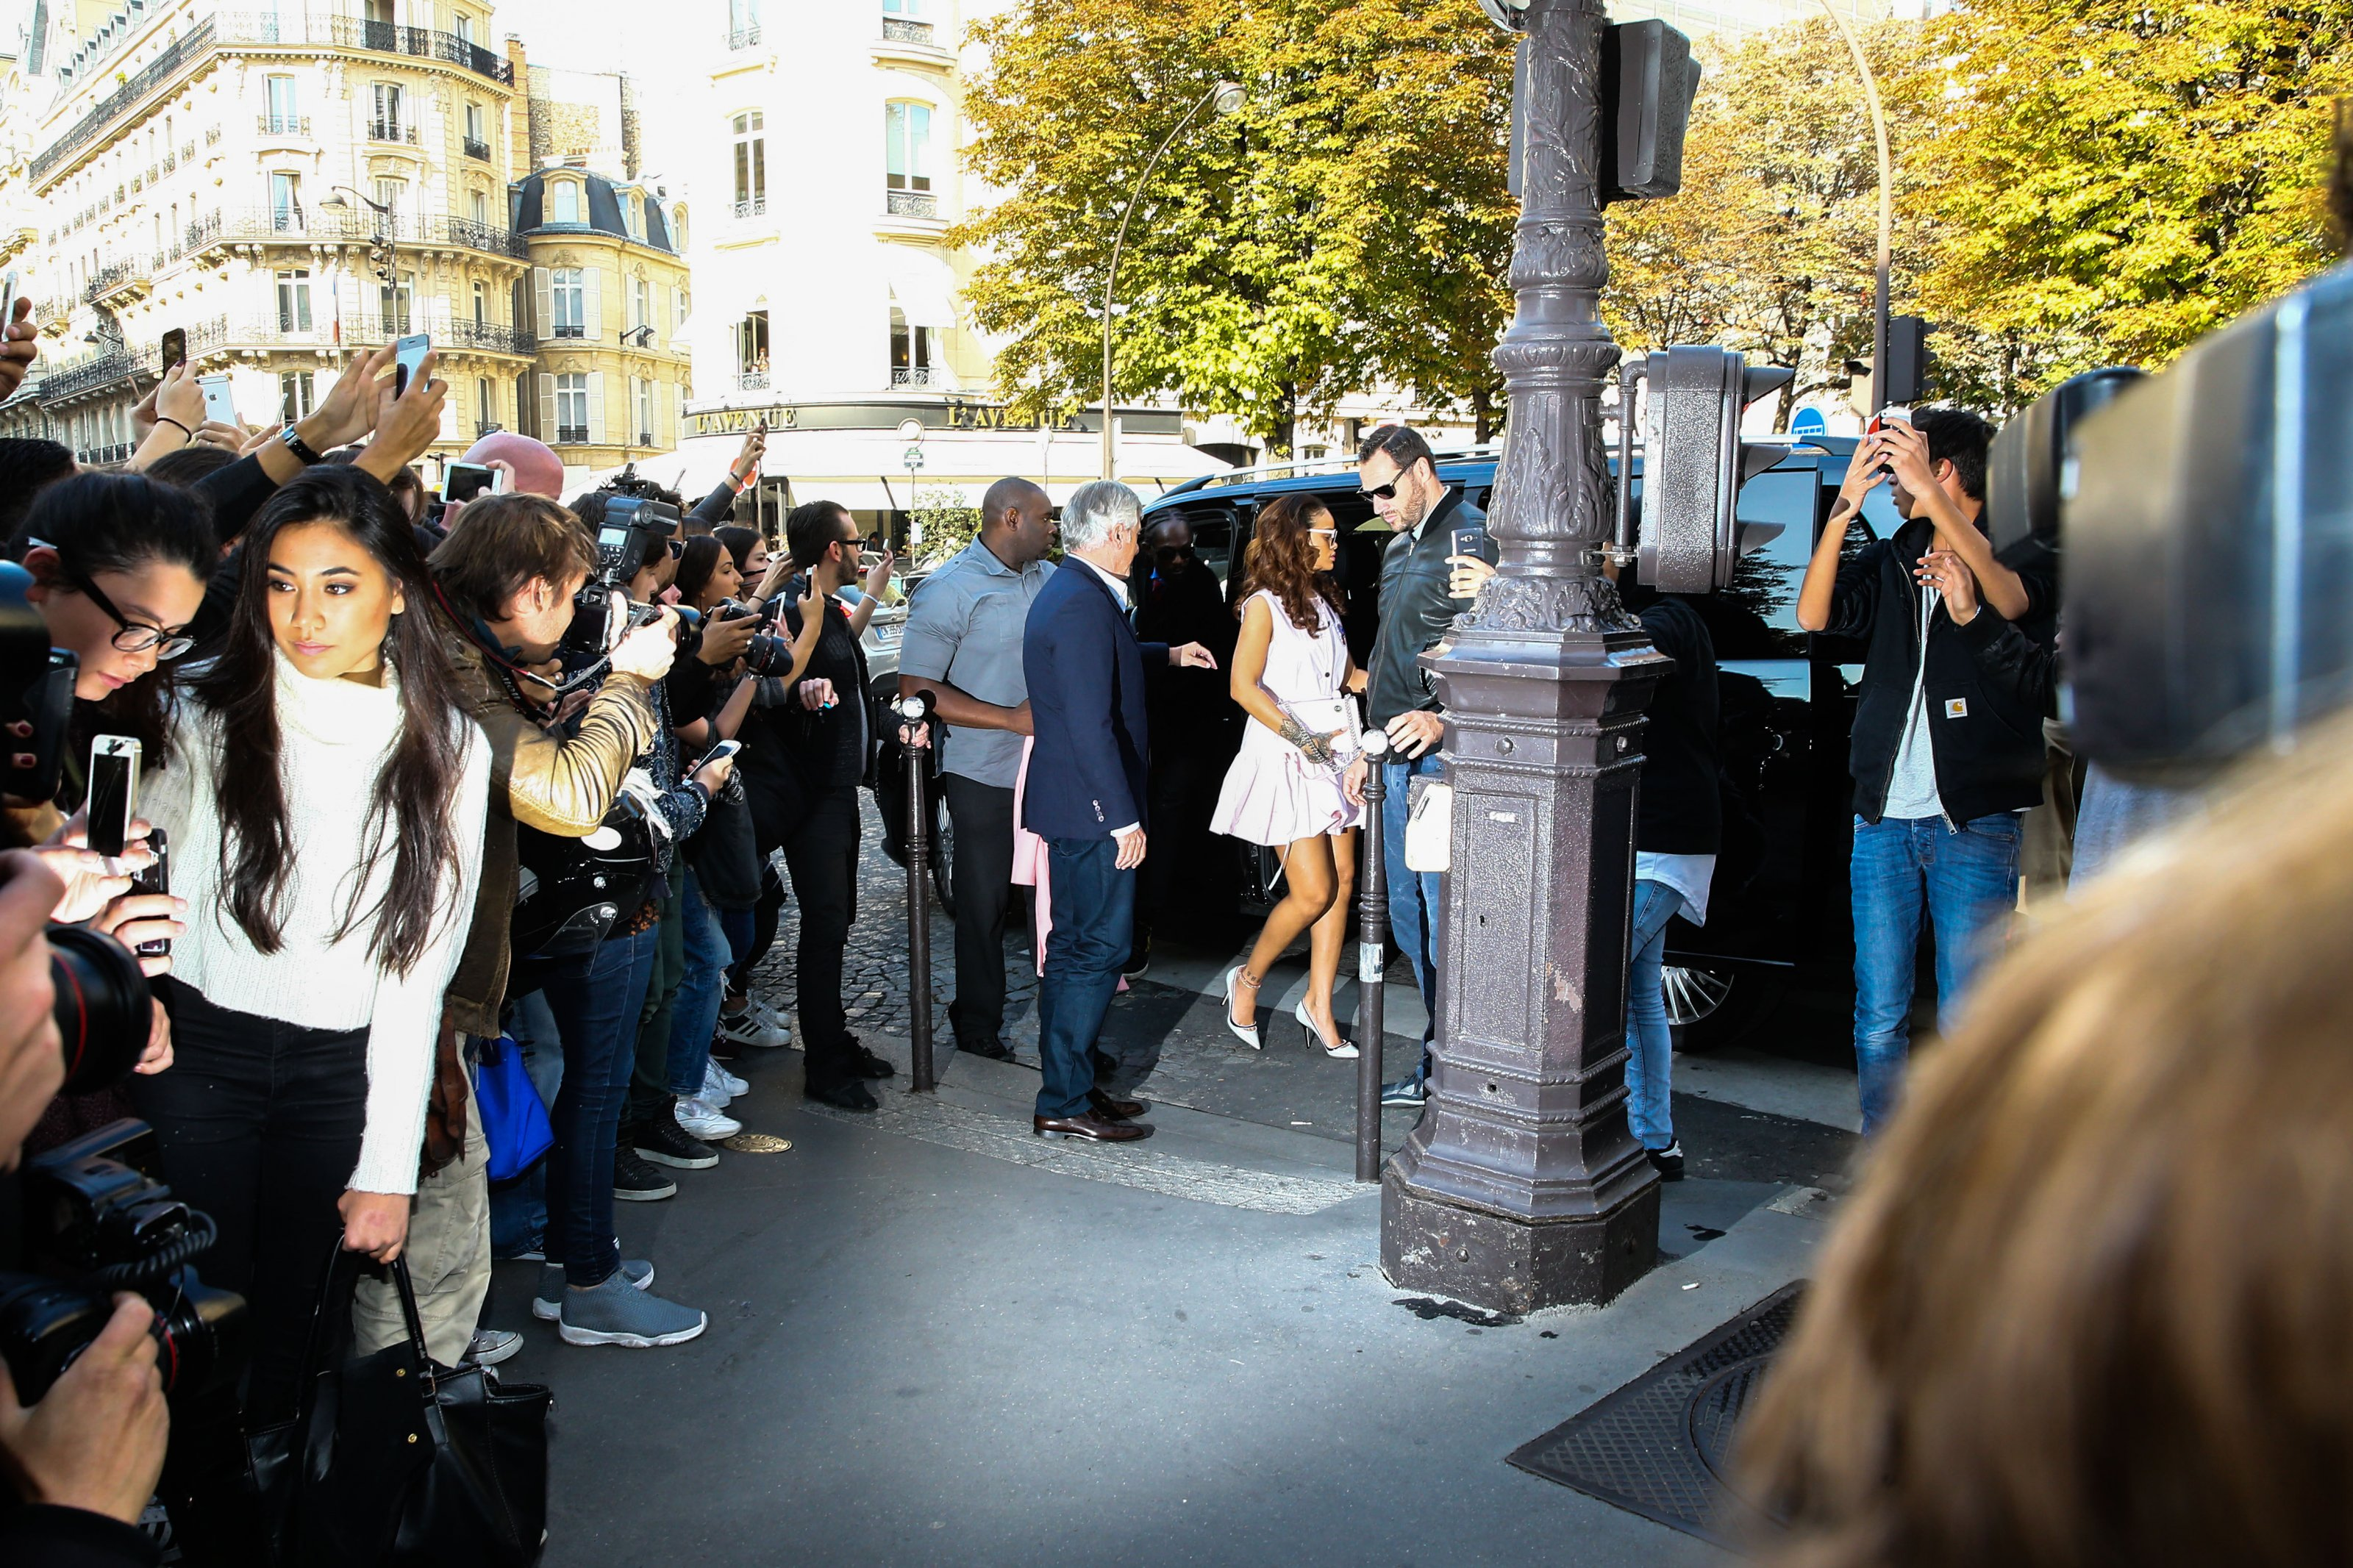 Rihanna is seen leaving L'Avenue Restaurant in Paris, France on October 3, 2015 and then she arriving at Dior boutique with Sidney Toledano. Photo by ABACAPRESS.COM